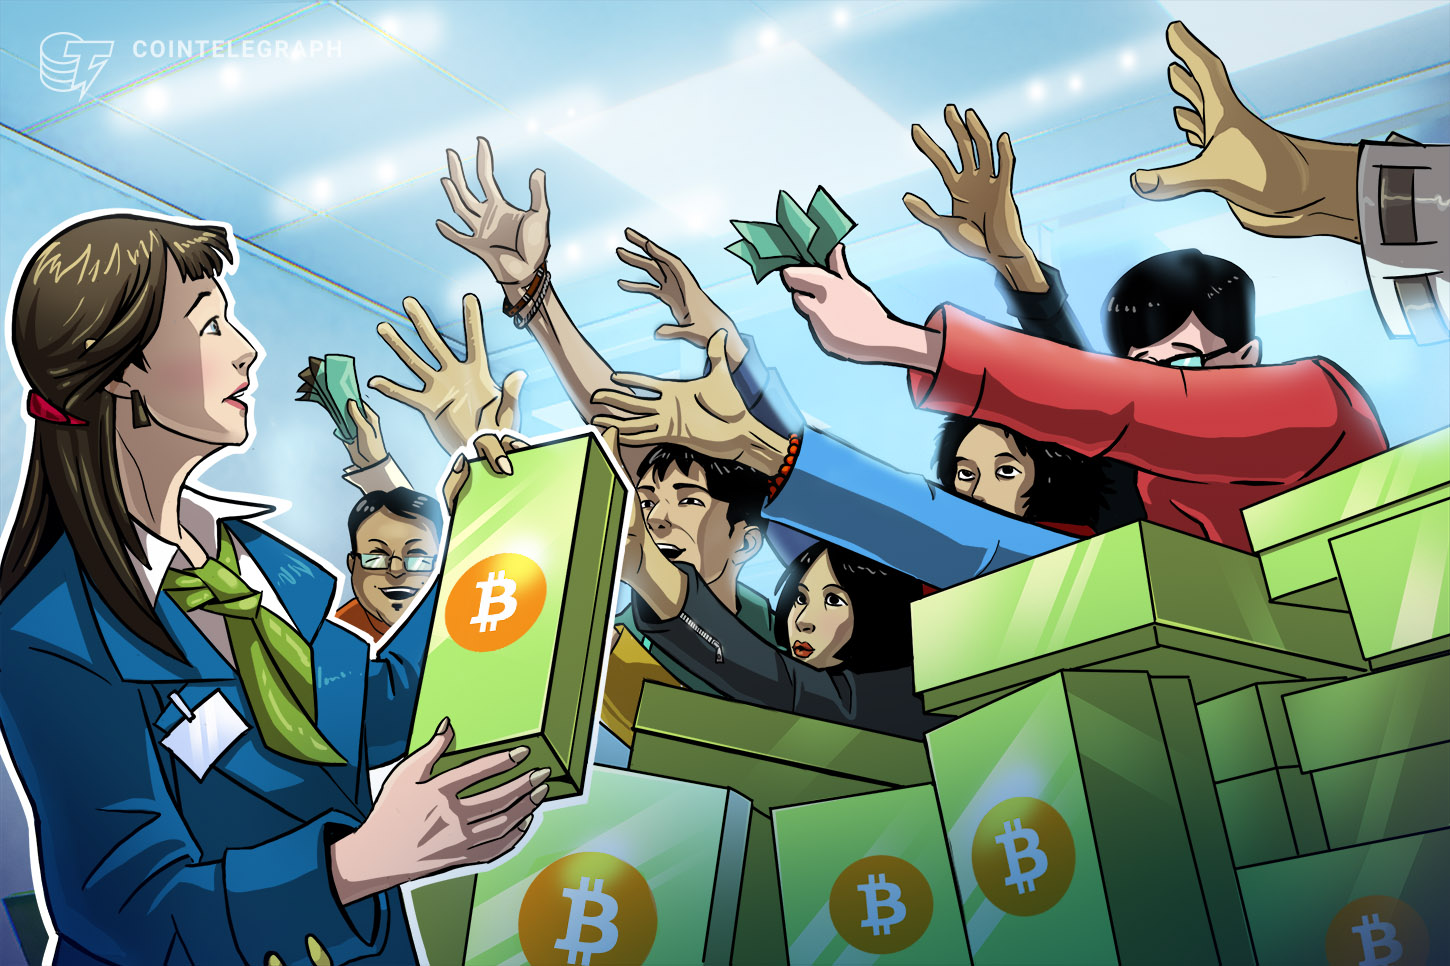 Insiders sold Microstrategy stock after Bitcoin's bull run